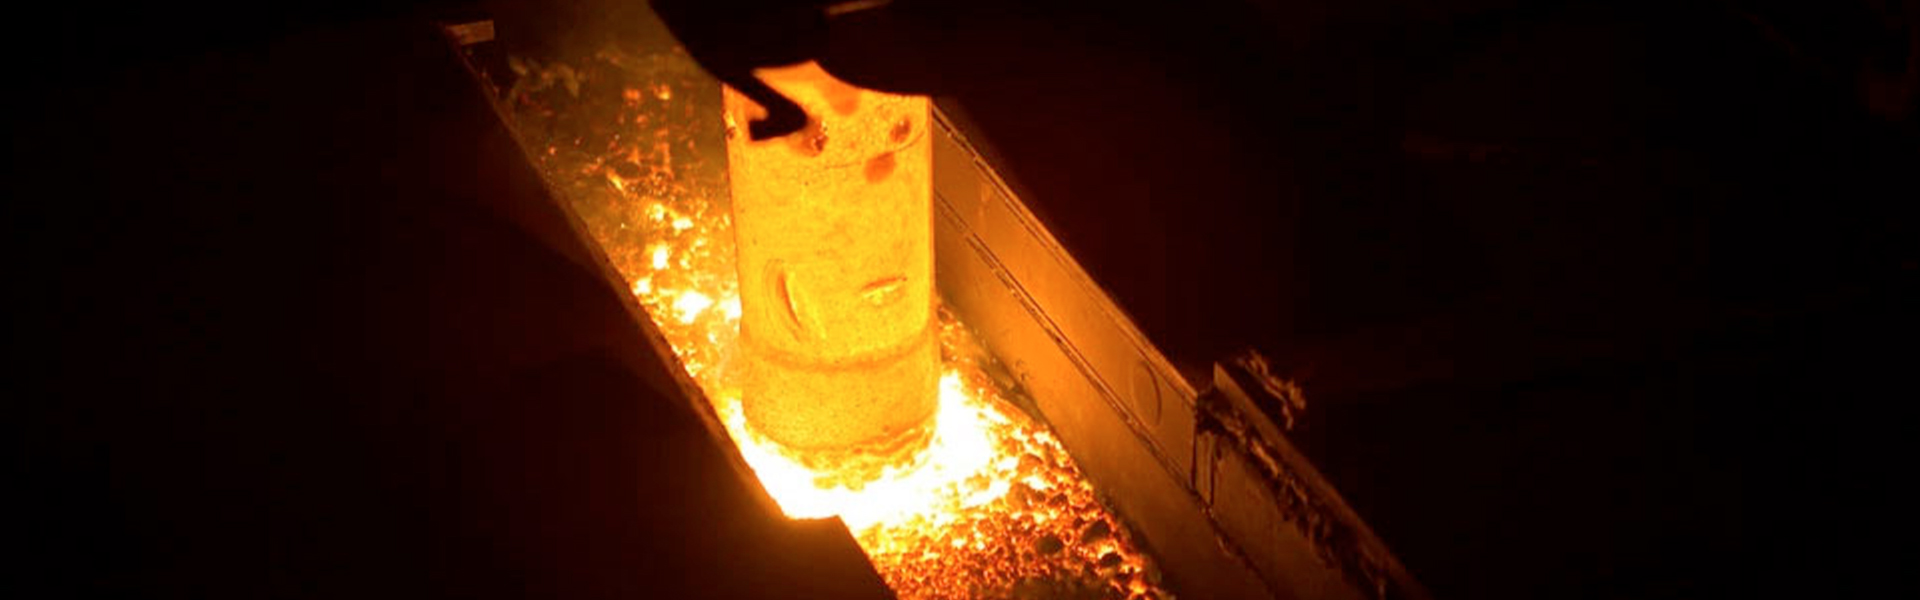 Application of TrackScan 3D Scanning System In The Manufacturing of Large Scale High Temperature Forging Molds